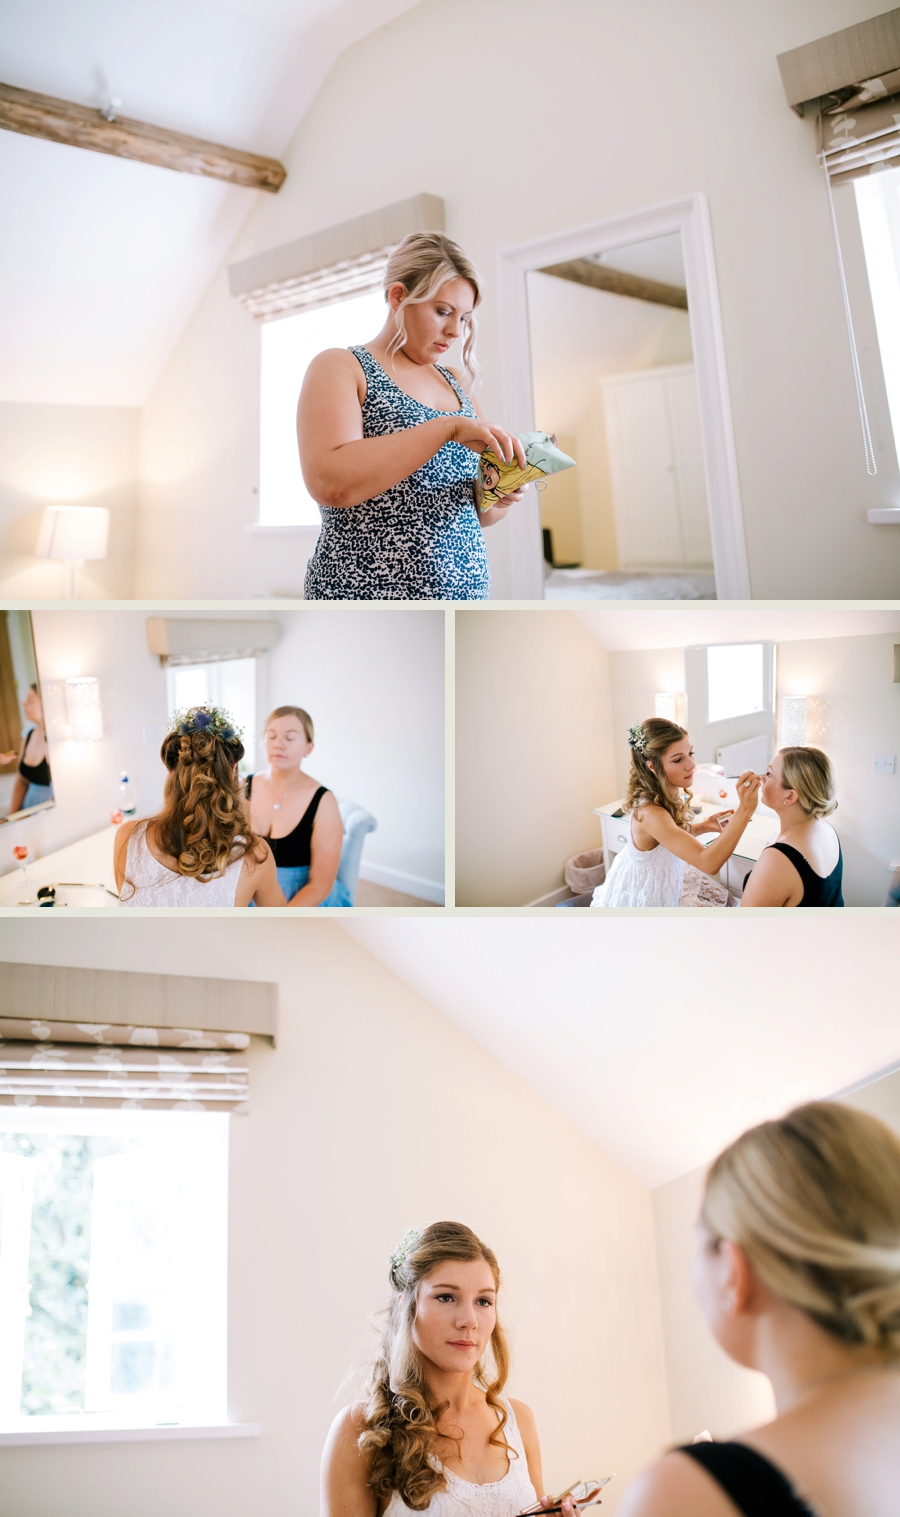 Somerset wedding photographer Packington Moor Wedding Emily and Lee 7